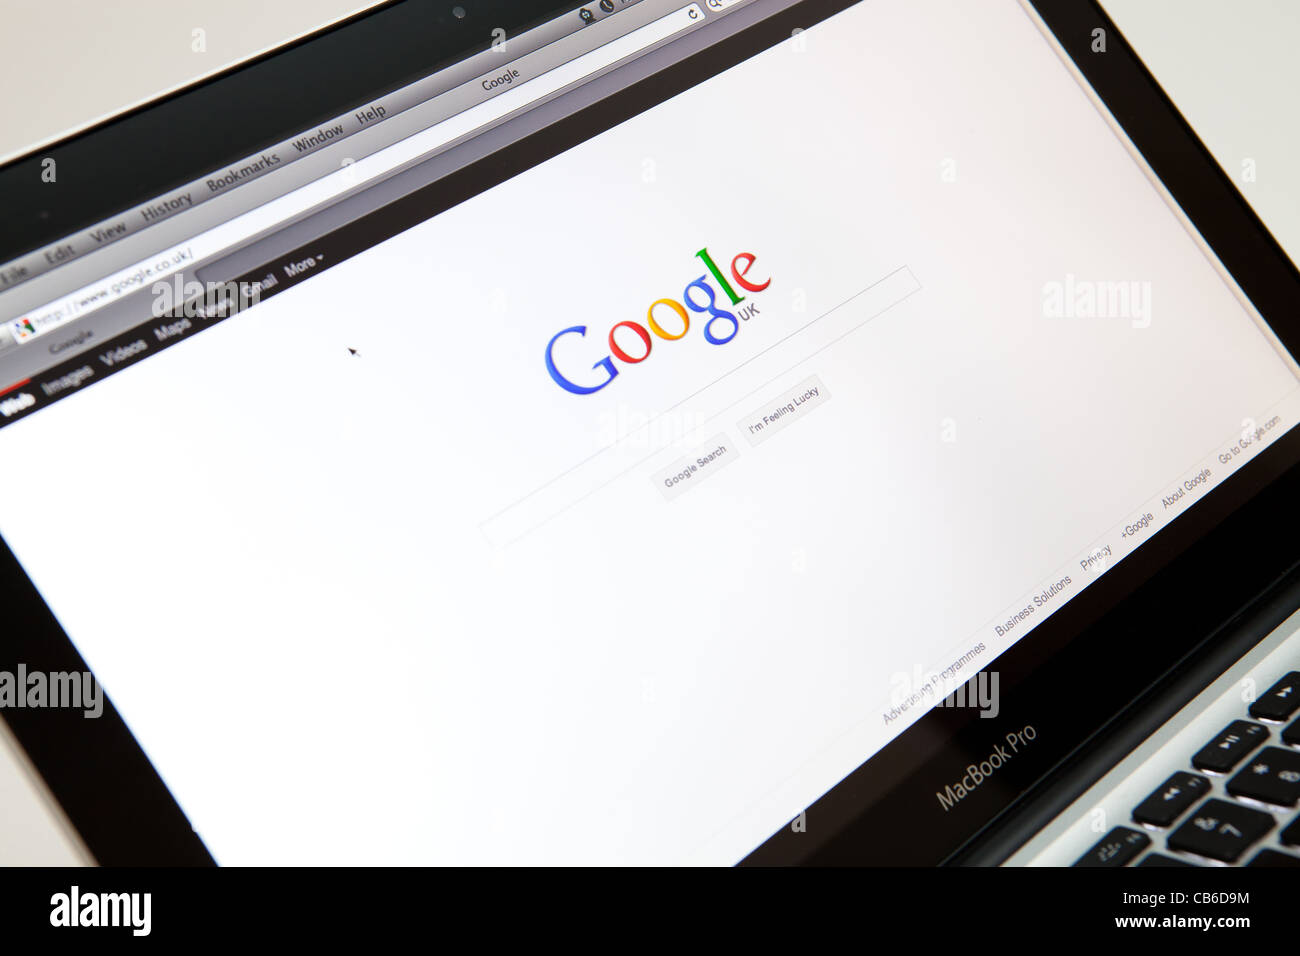 Google Search Engine Website Screen shot of web page - Stock Image